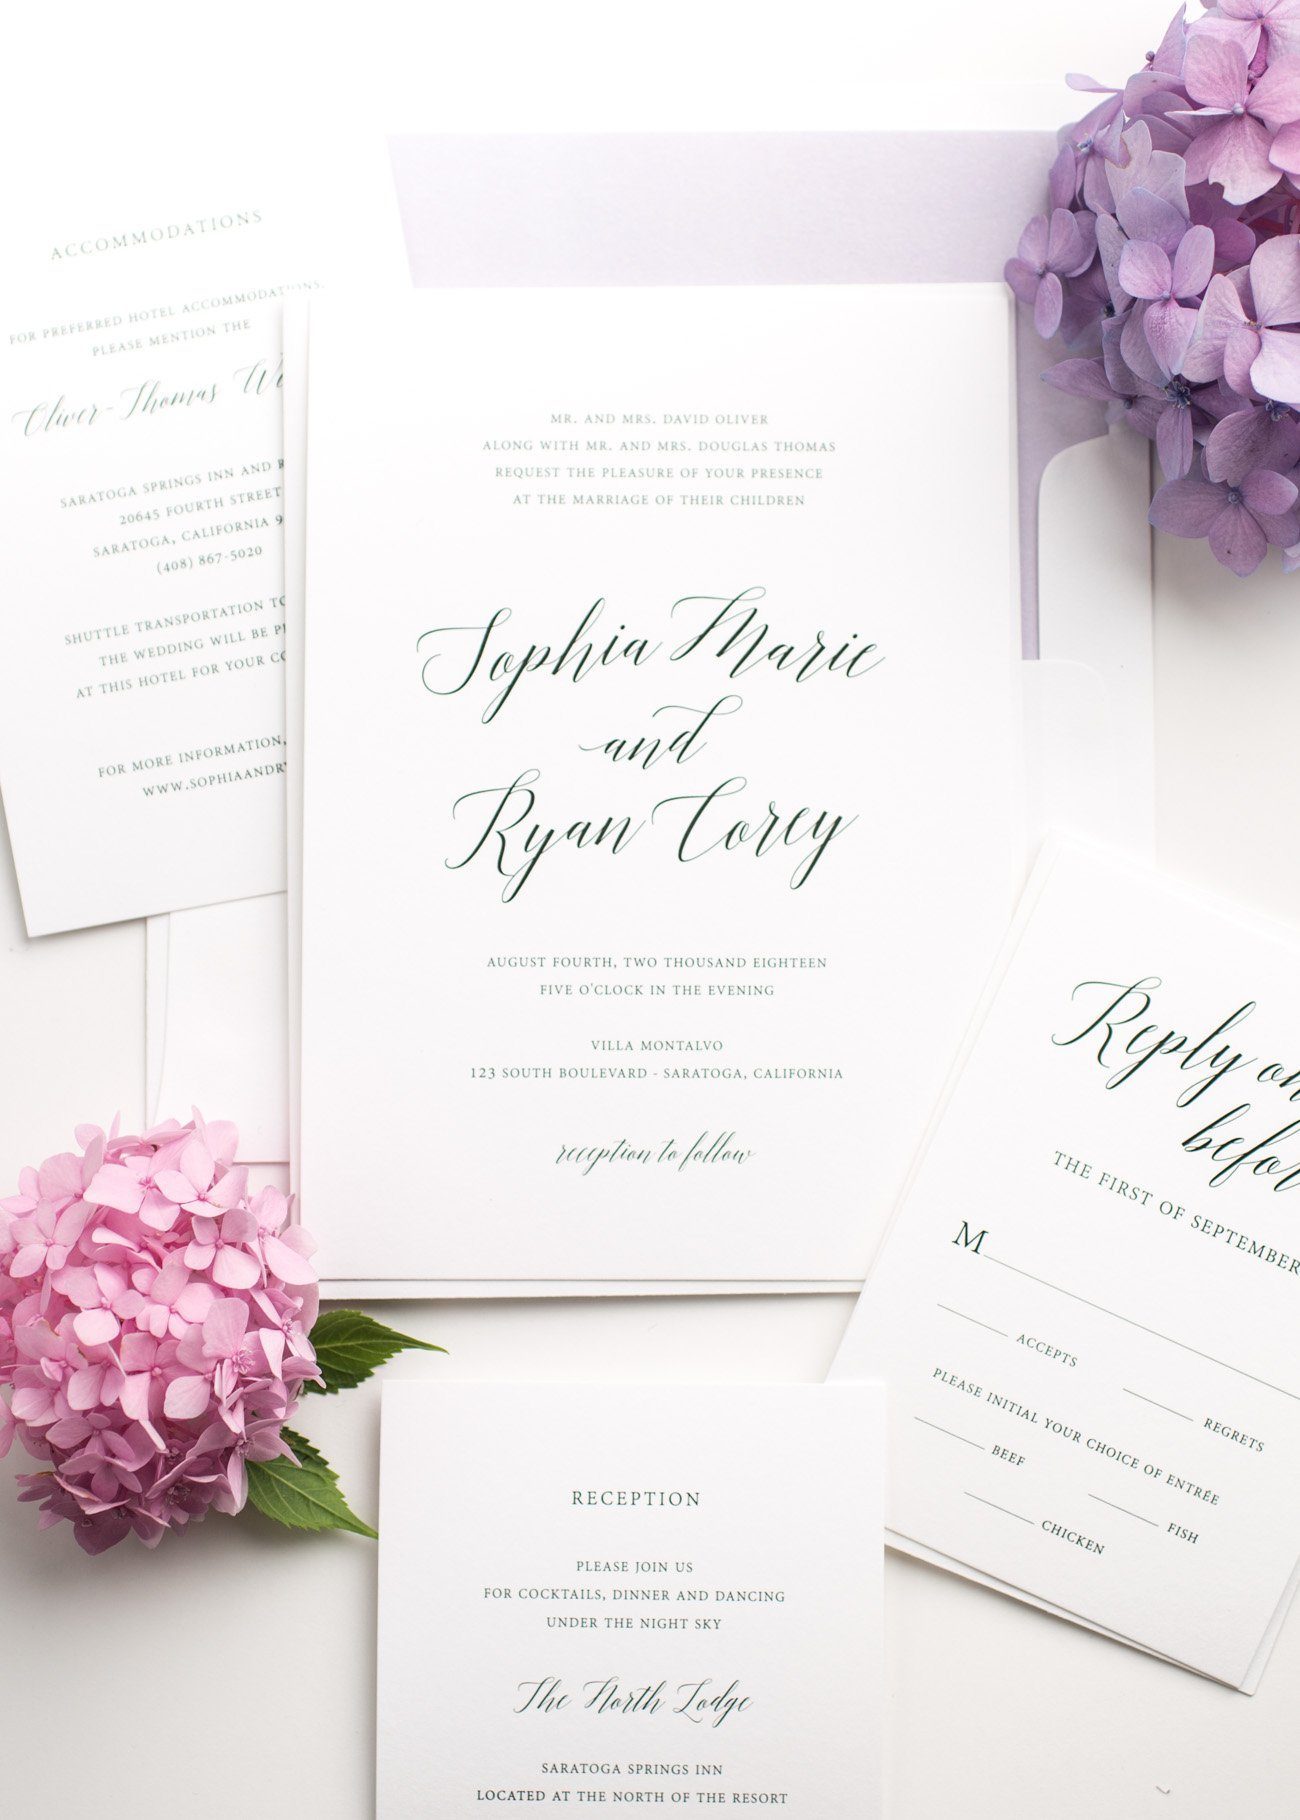 Calligraphy Wedding Invitations with a watercolor liner in lavender